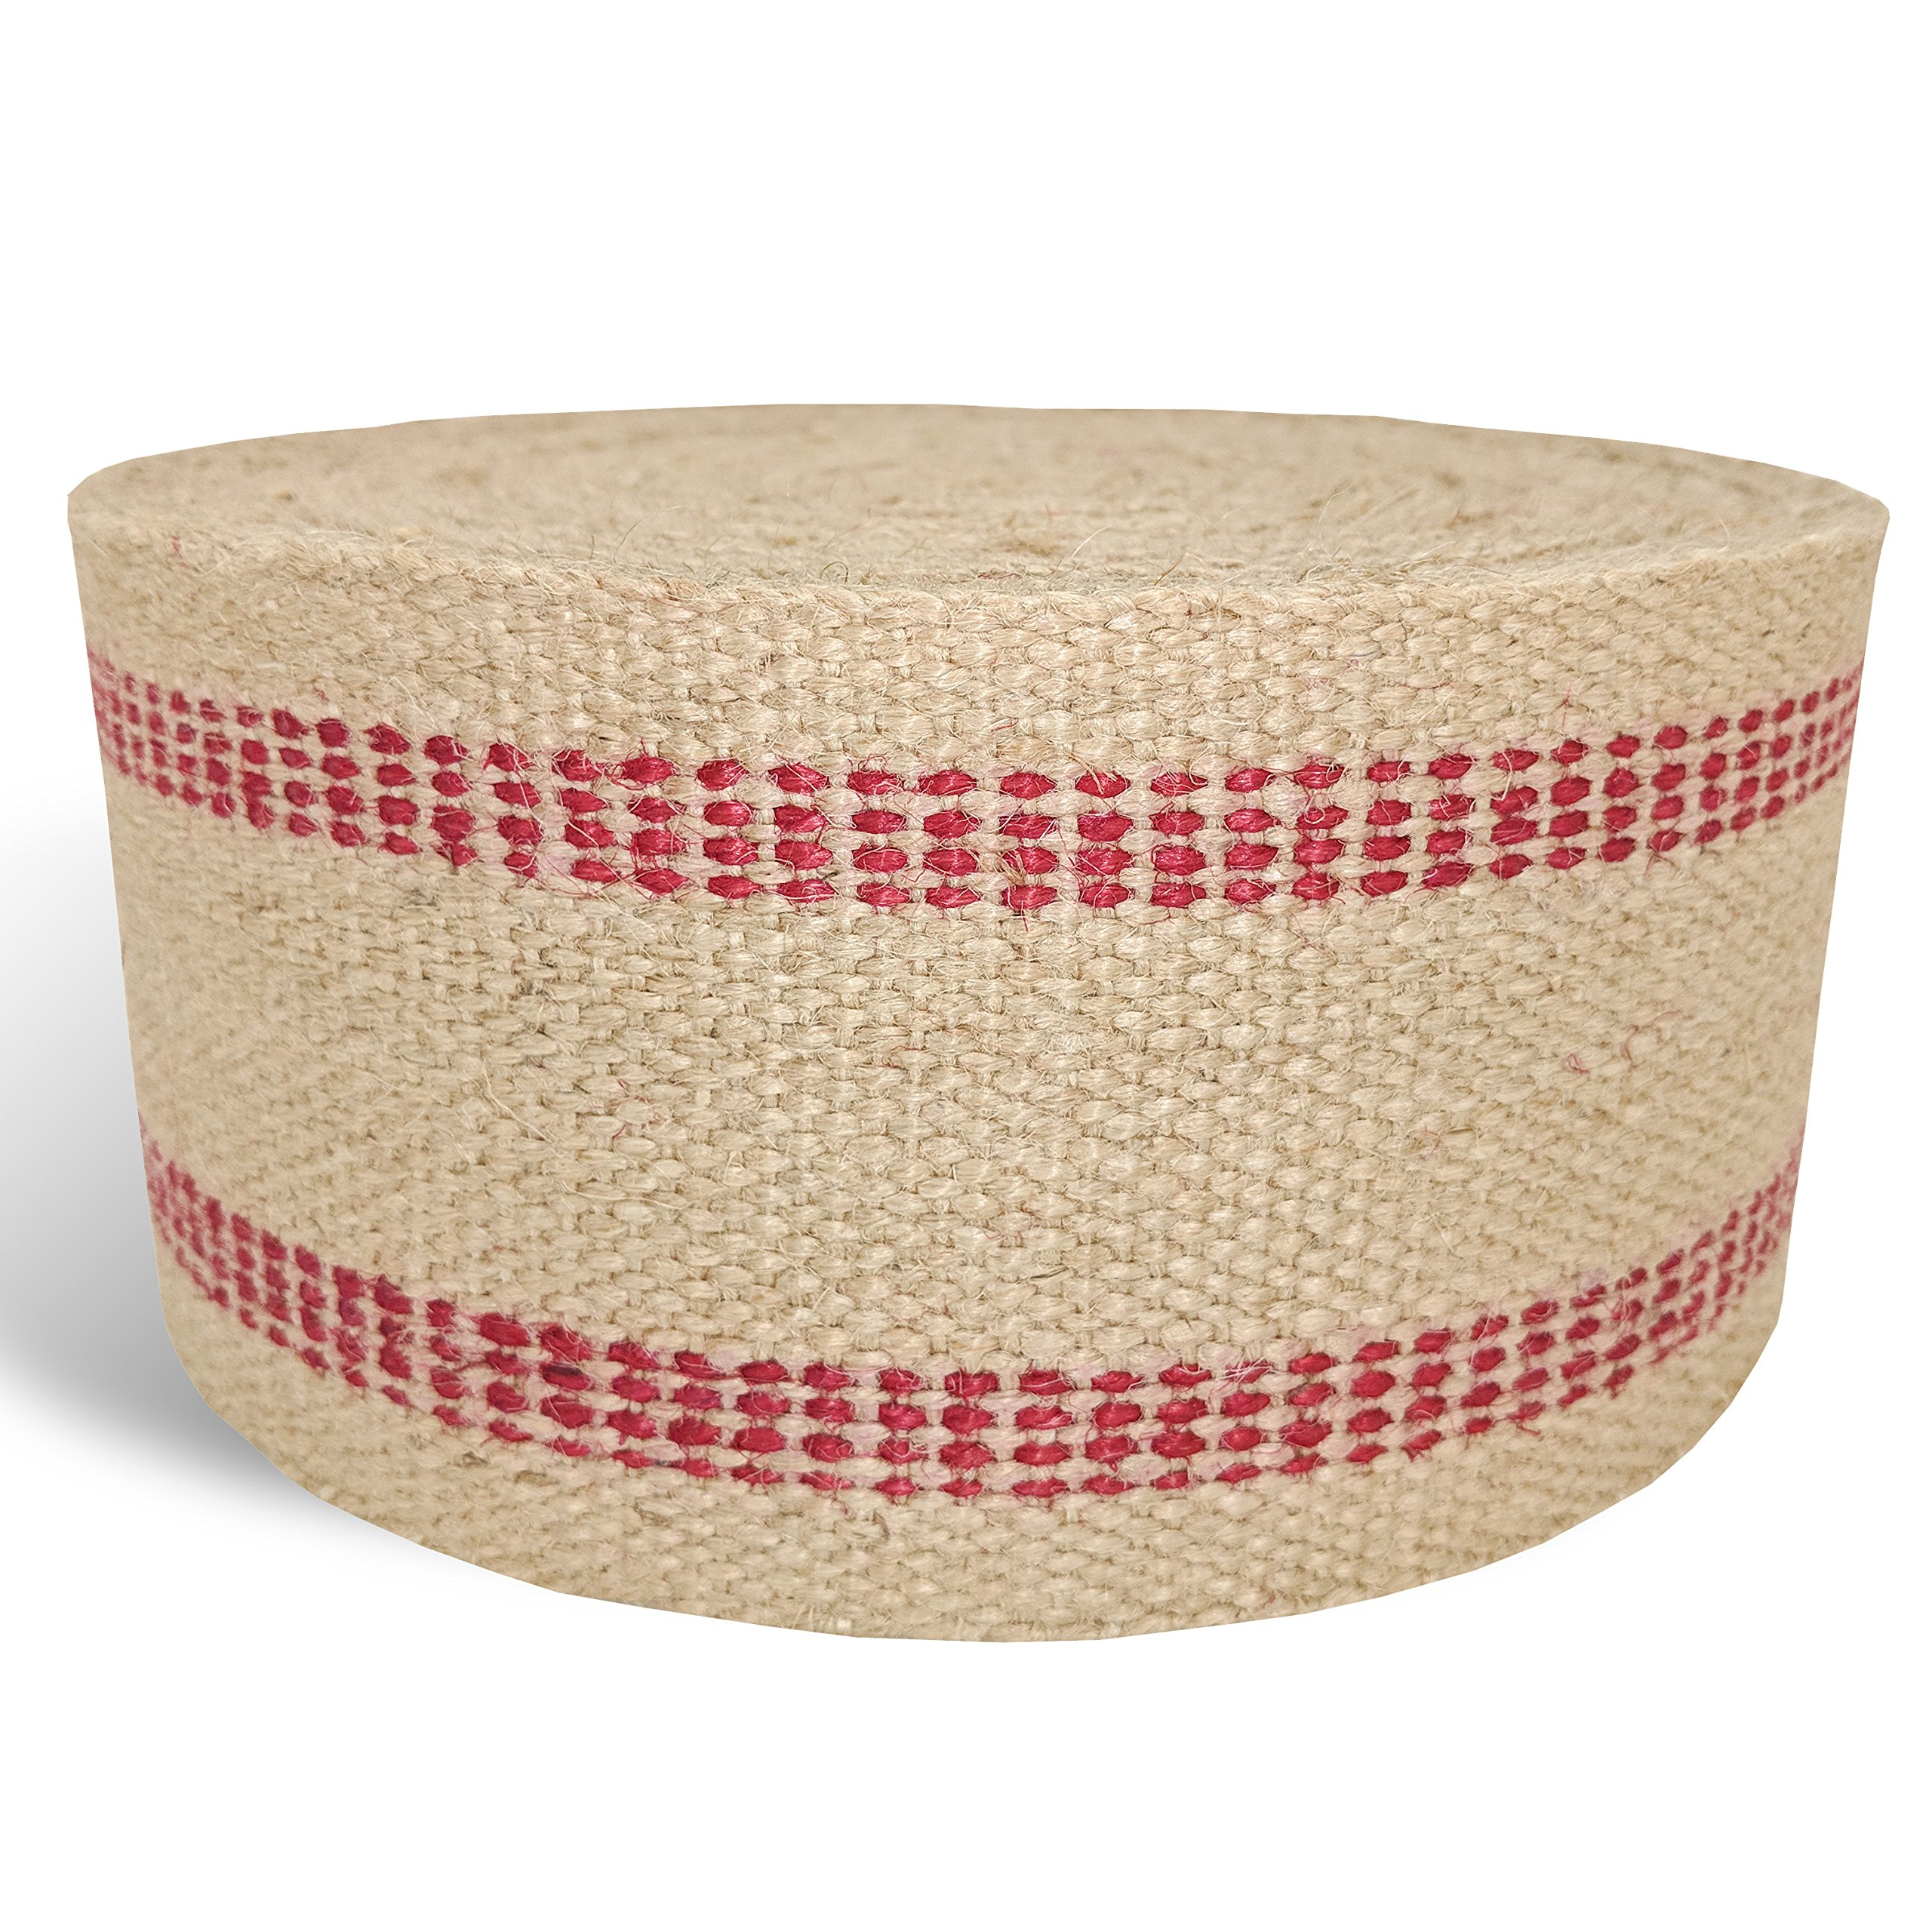 Red Upholstery Craft Jute Webbing, 11 lbs 3.5'' x 10Yd and 20 Yd Rolls (20 yd)